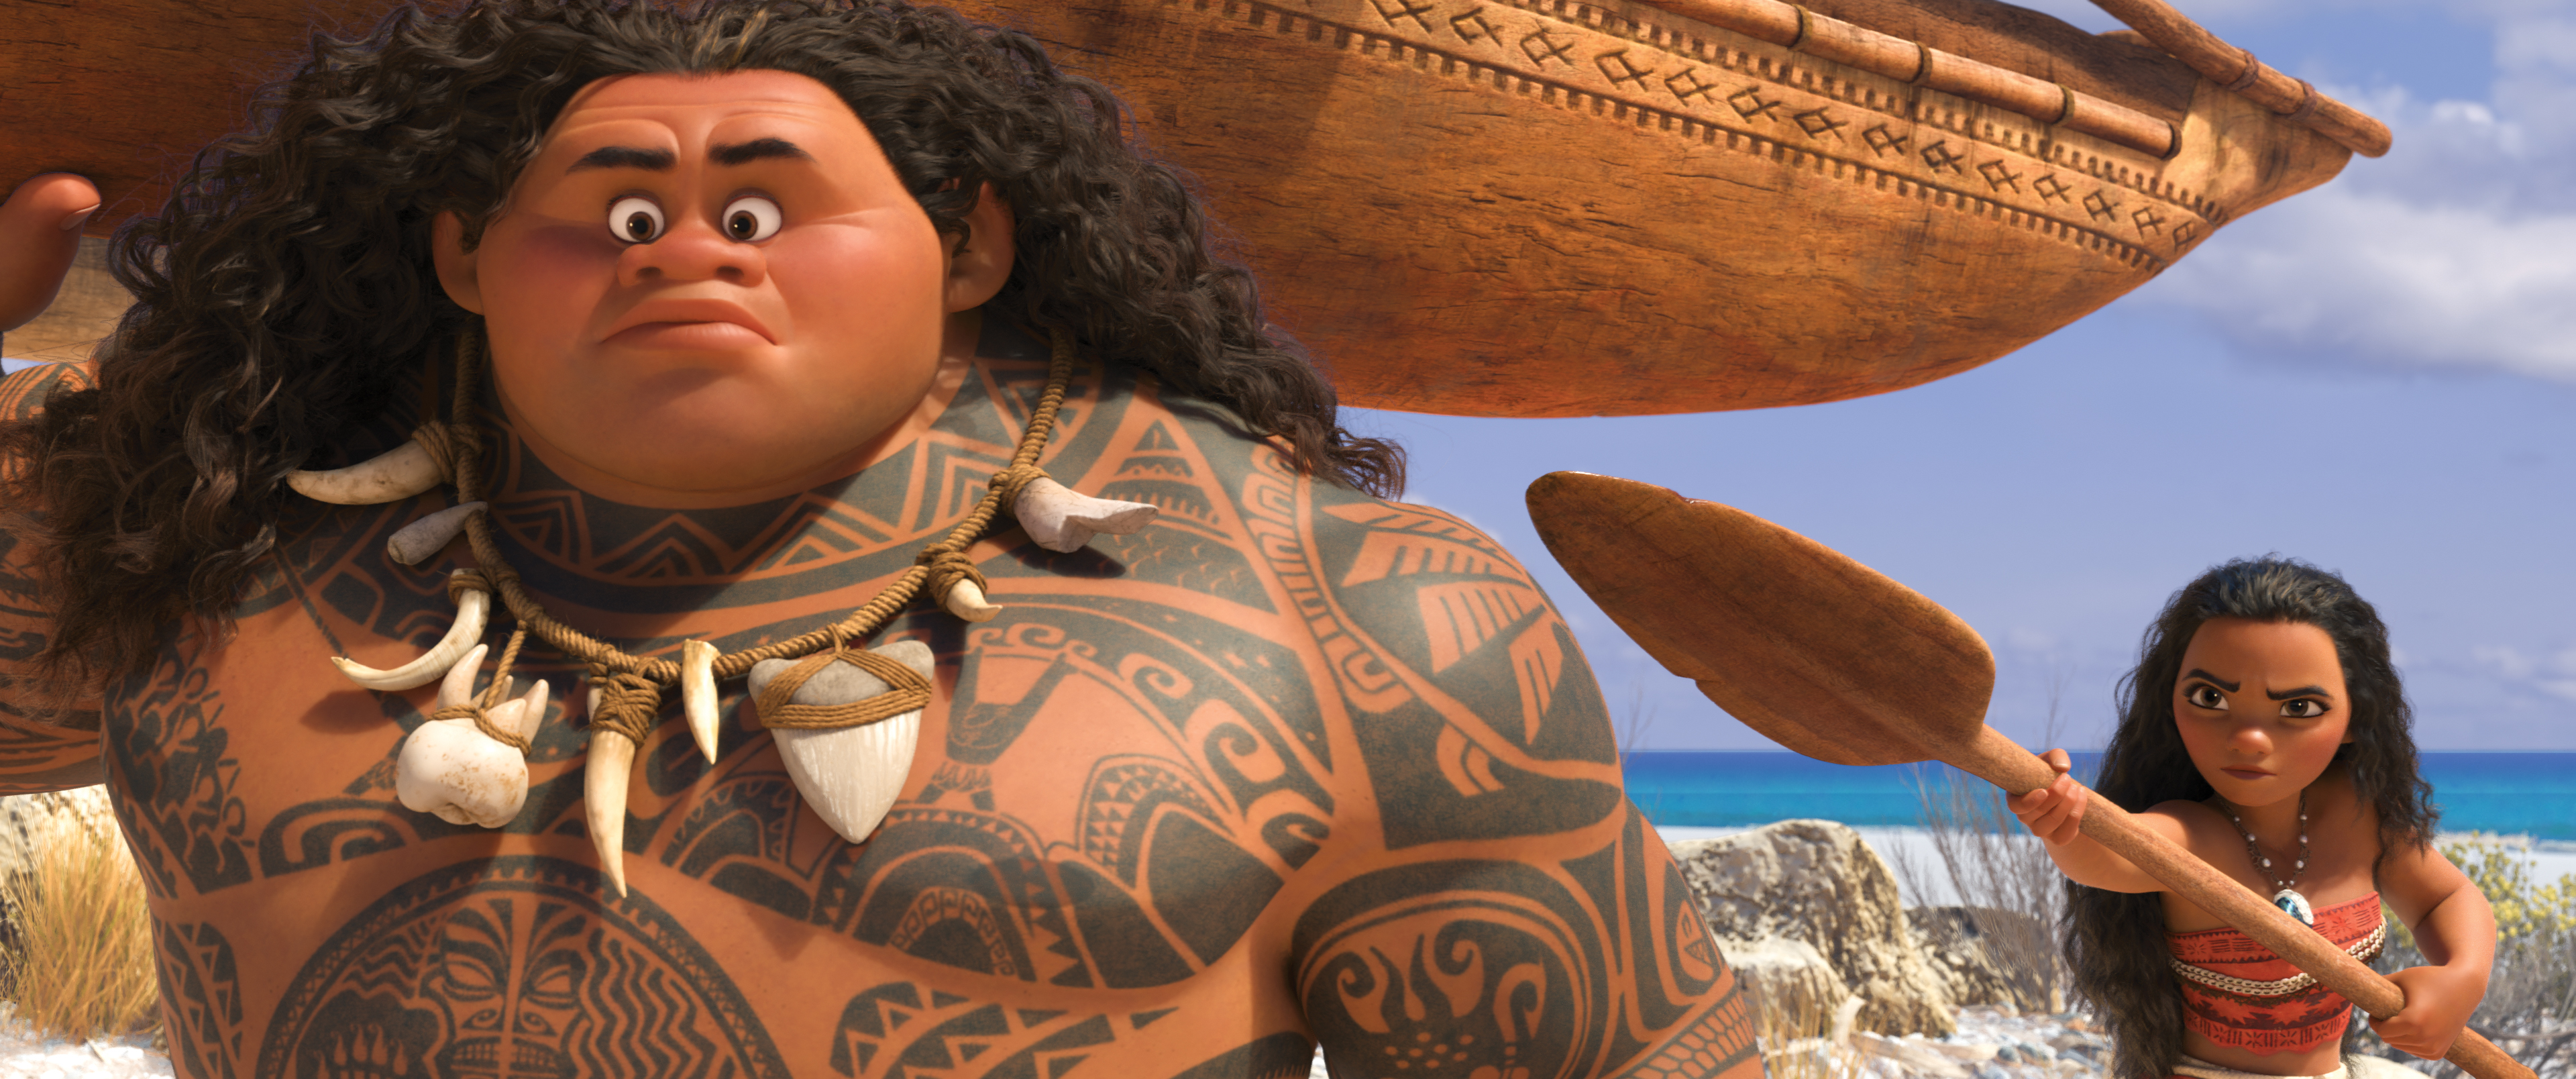 Image result for moana images